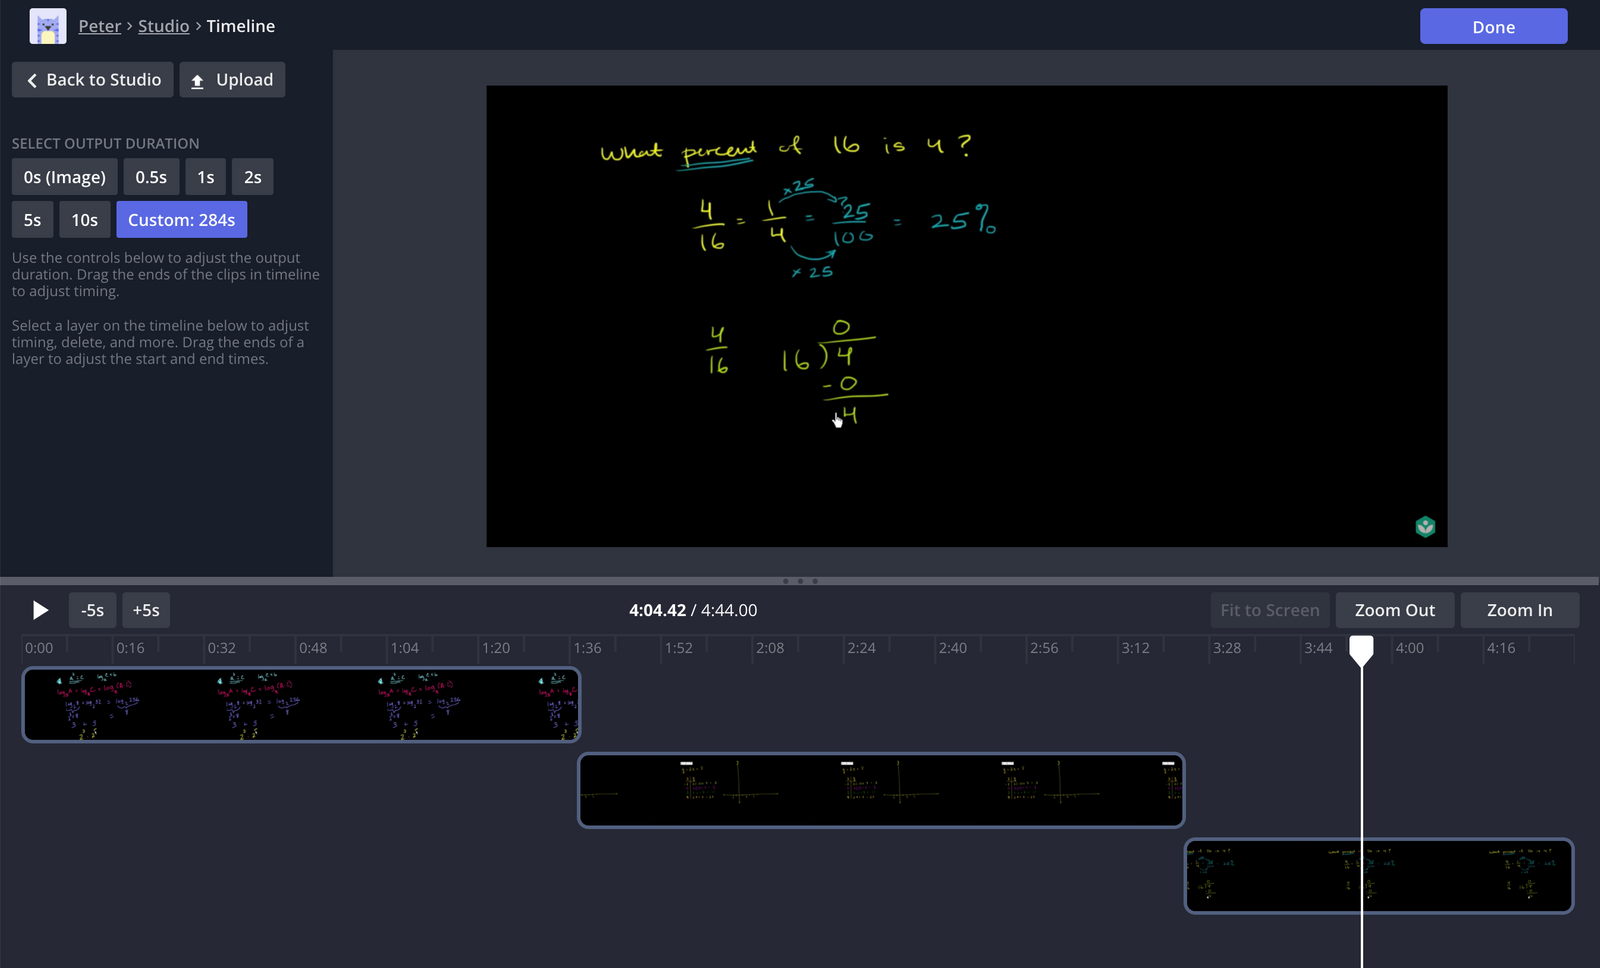 A screenshot from the Kapwing Timeline editor.